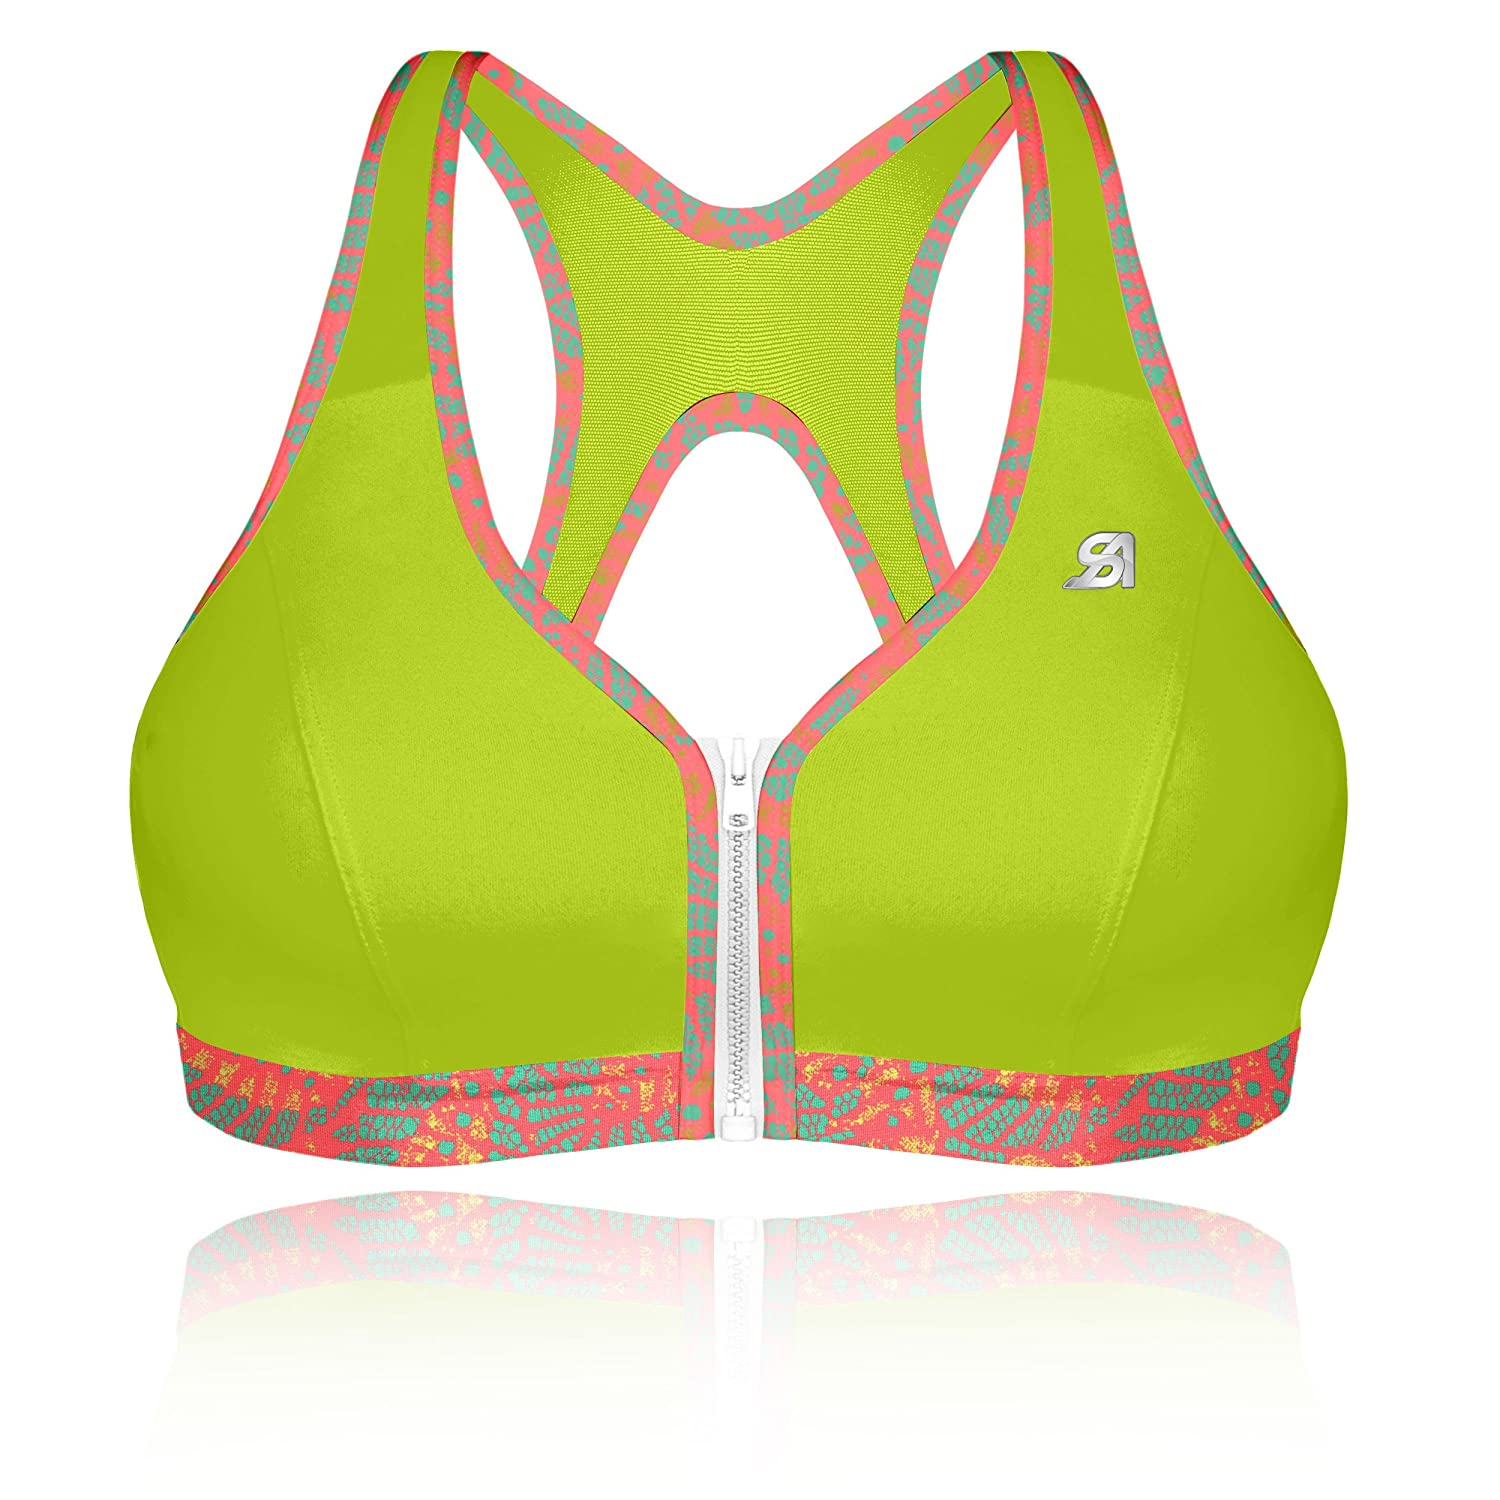 TALLA 75D. Shock Absorber Active Zipped Plunge, Sujetador Deportivo para Mujer